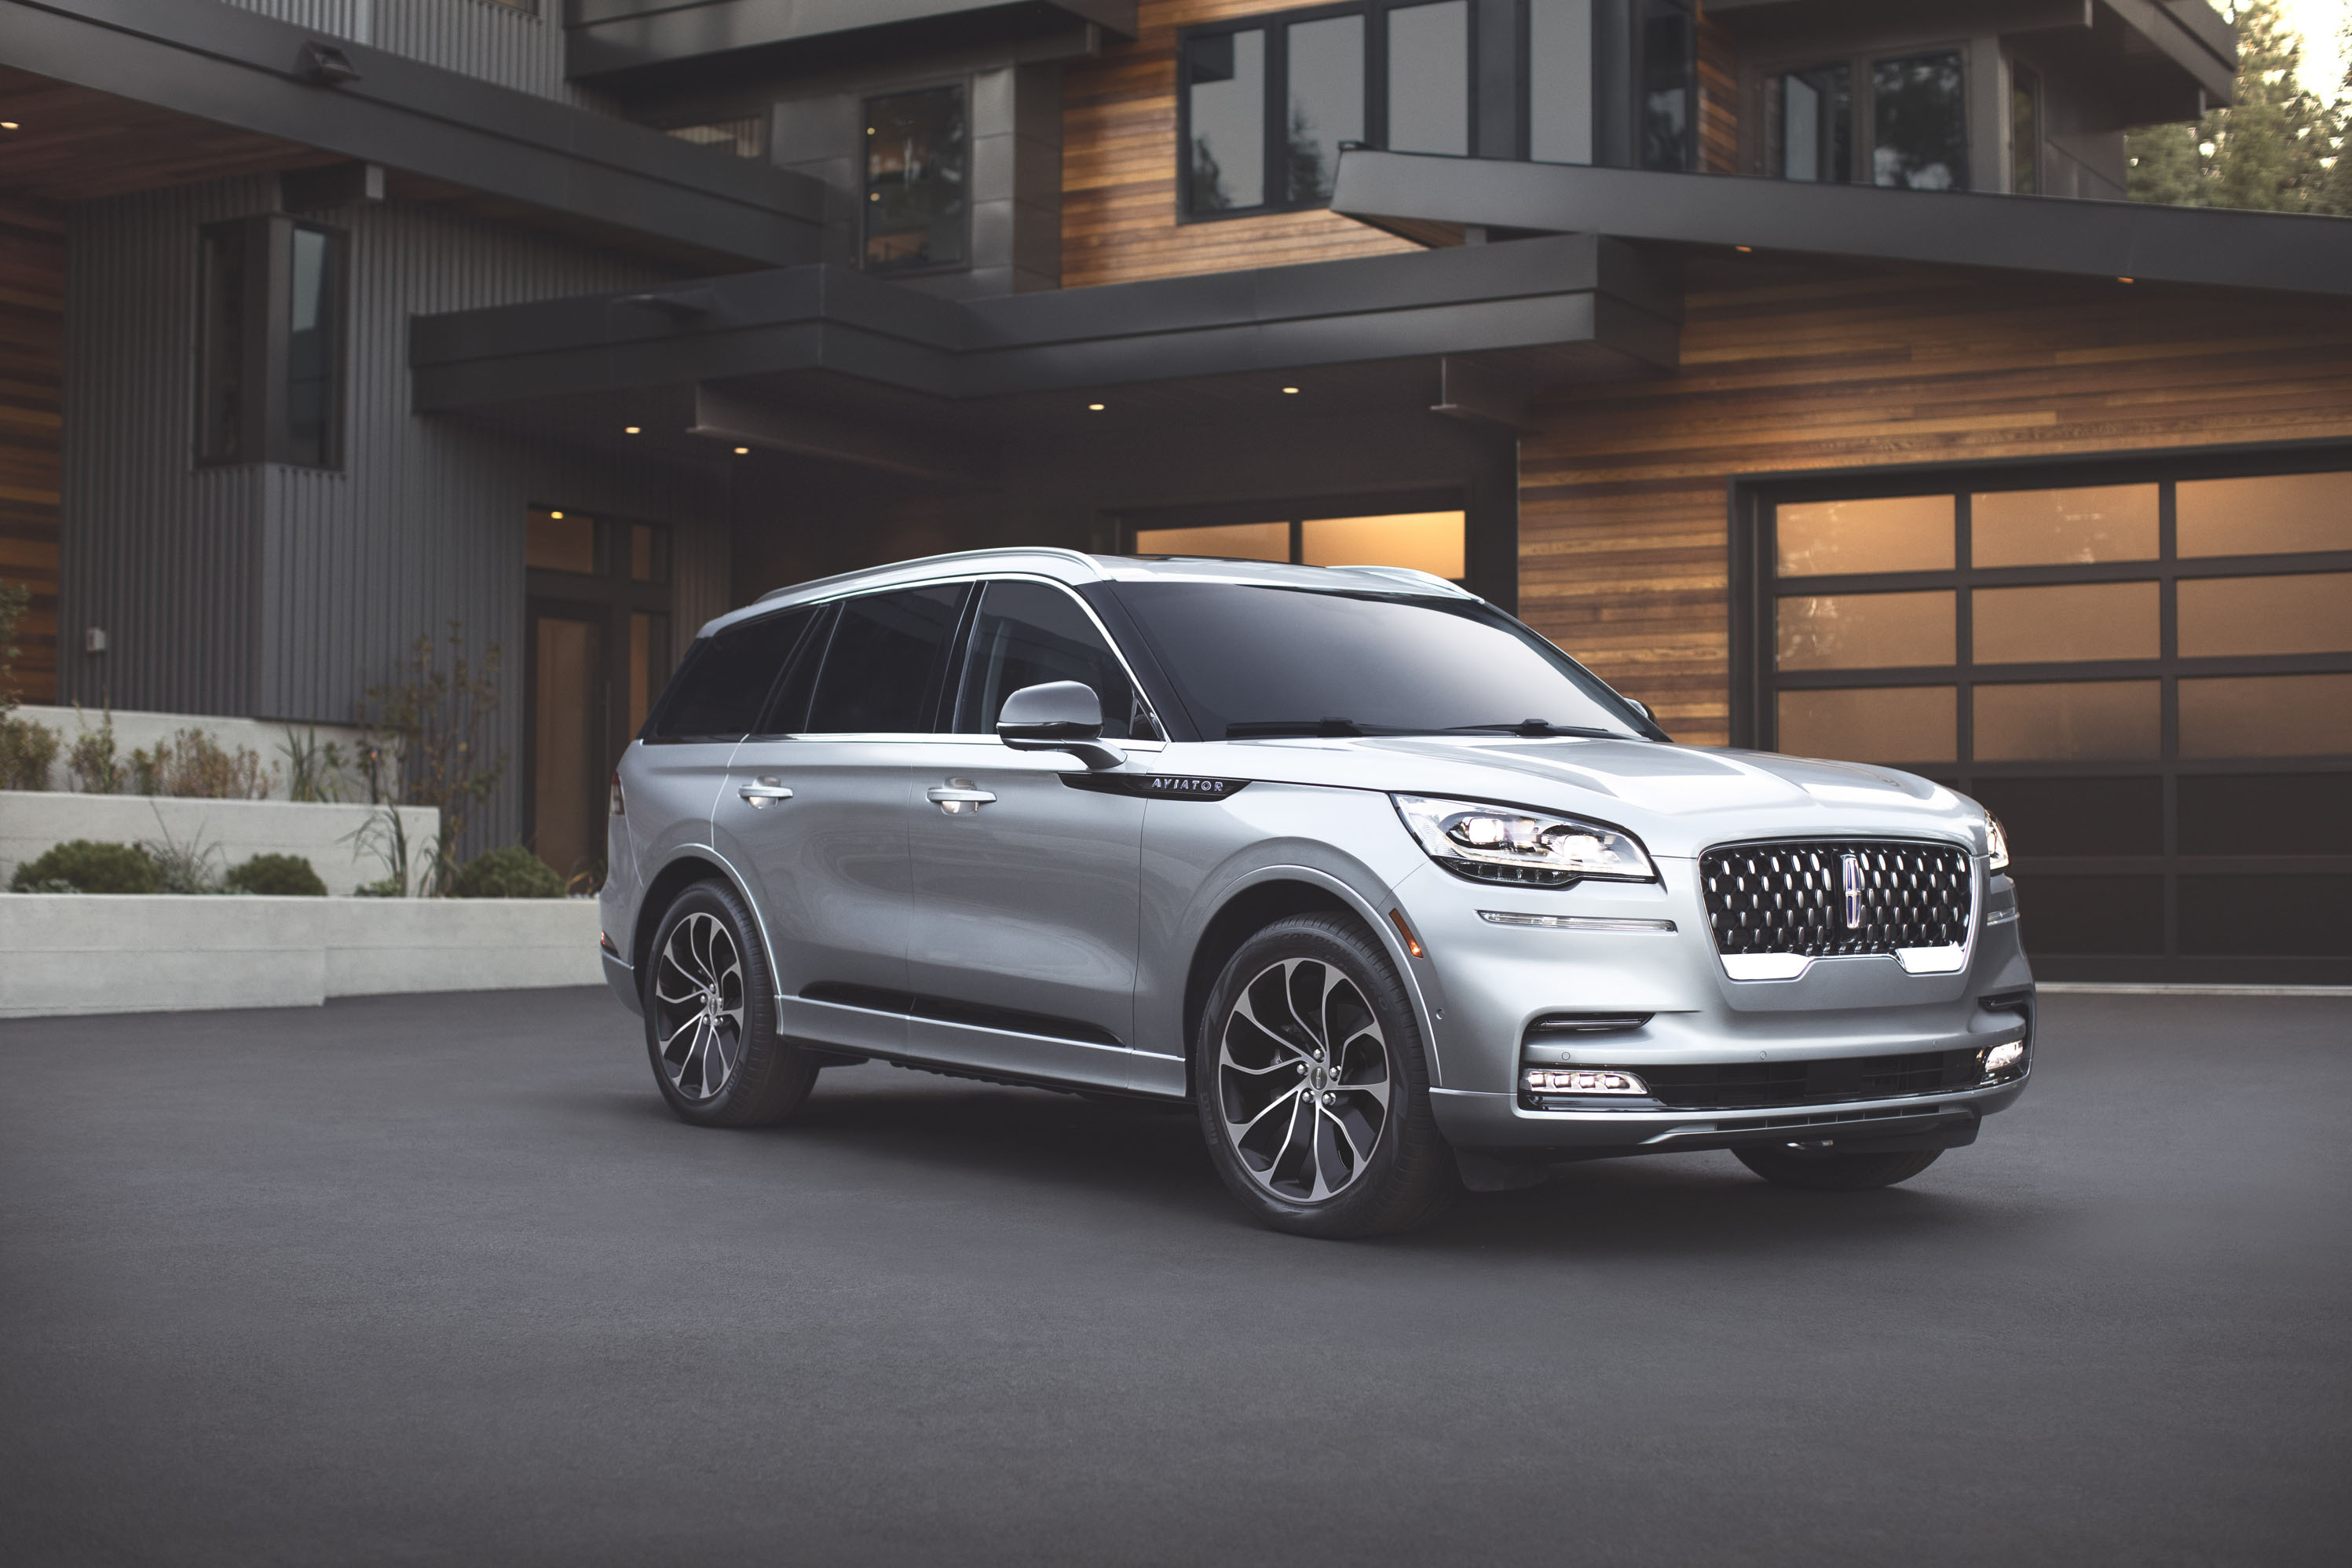 2020 Lincoln Aviator Luxury Suv Lands For 52 195